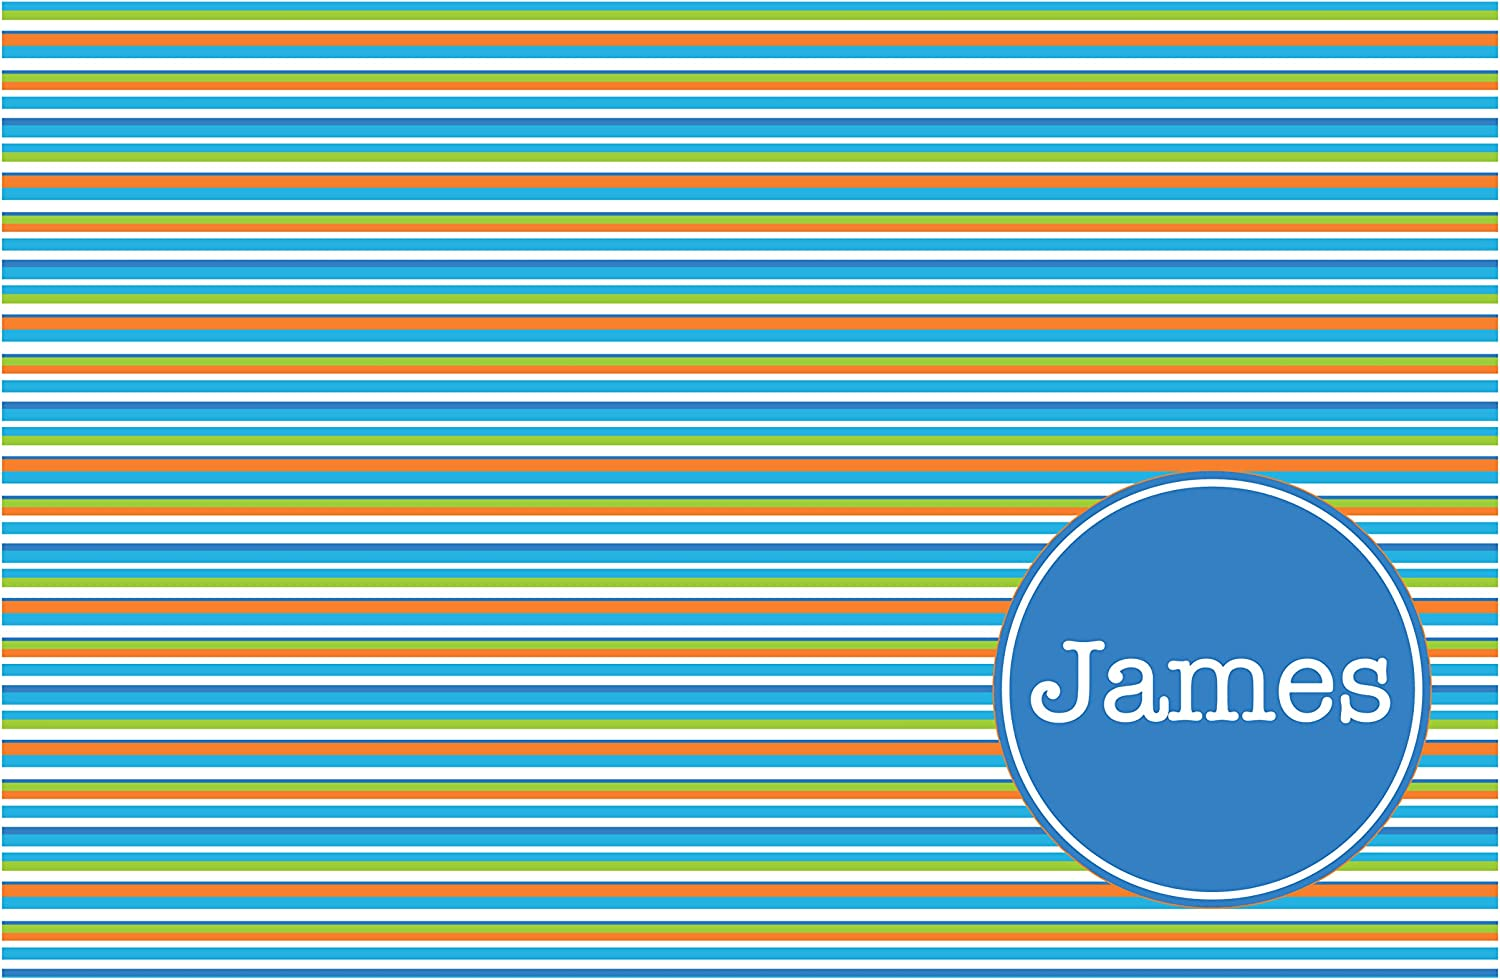 Albuquerque Challenge the lowest price Mall Horizontal Stripes with Personalized Blue Placemat